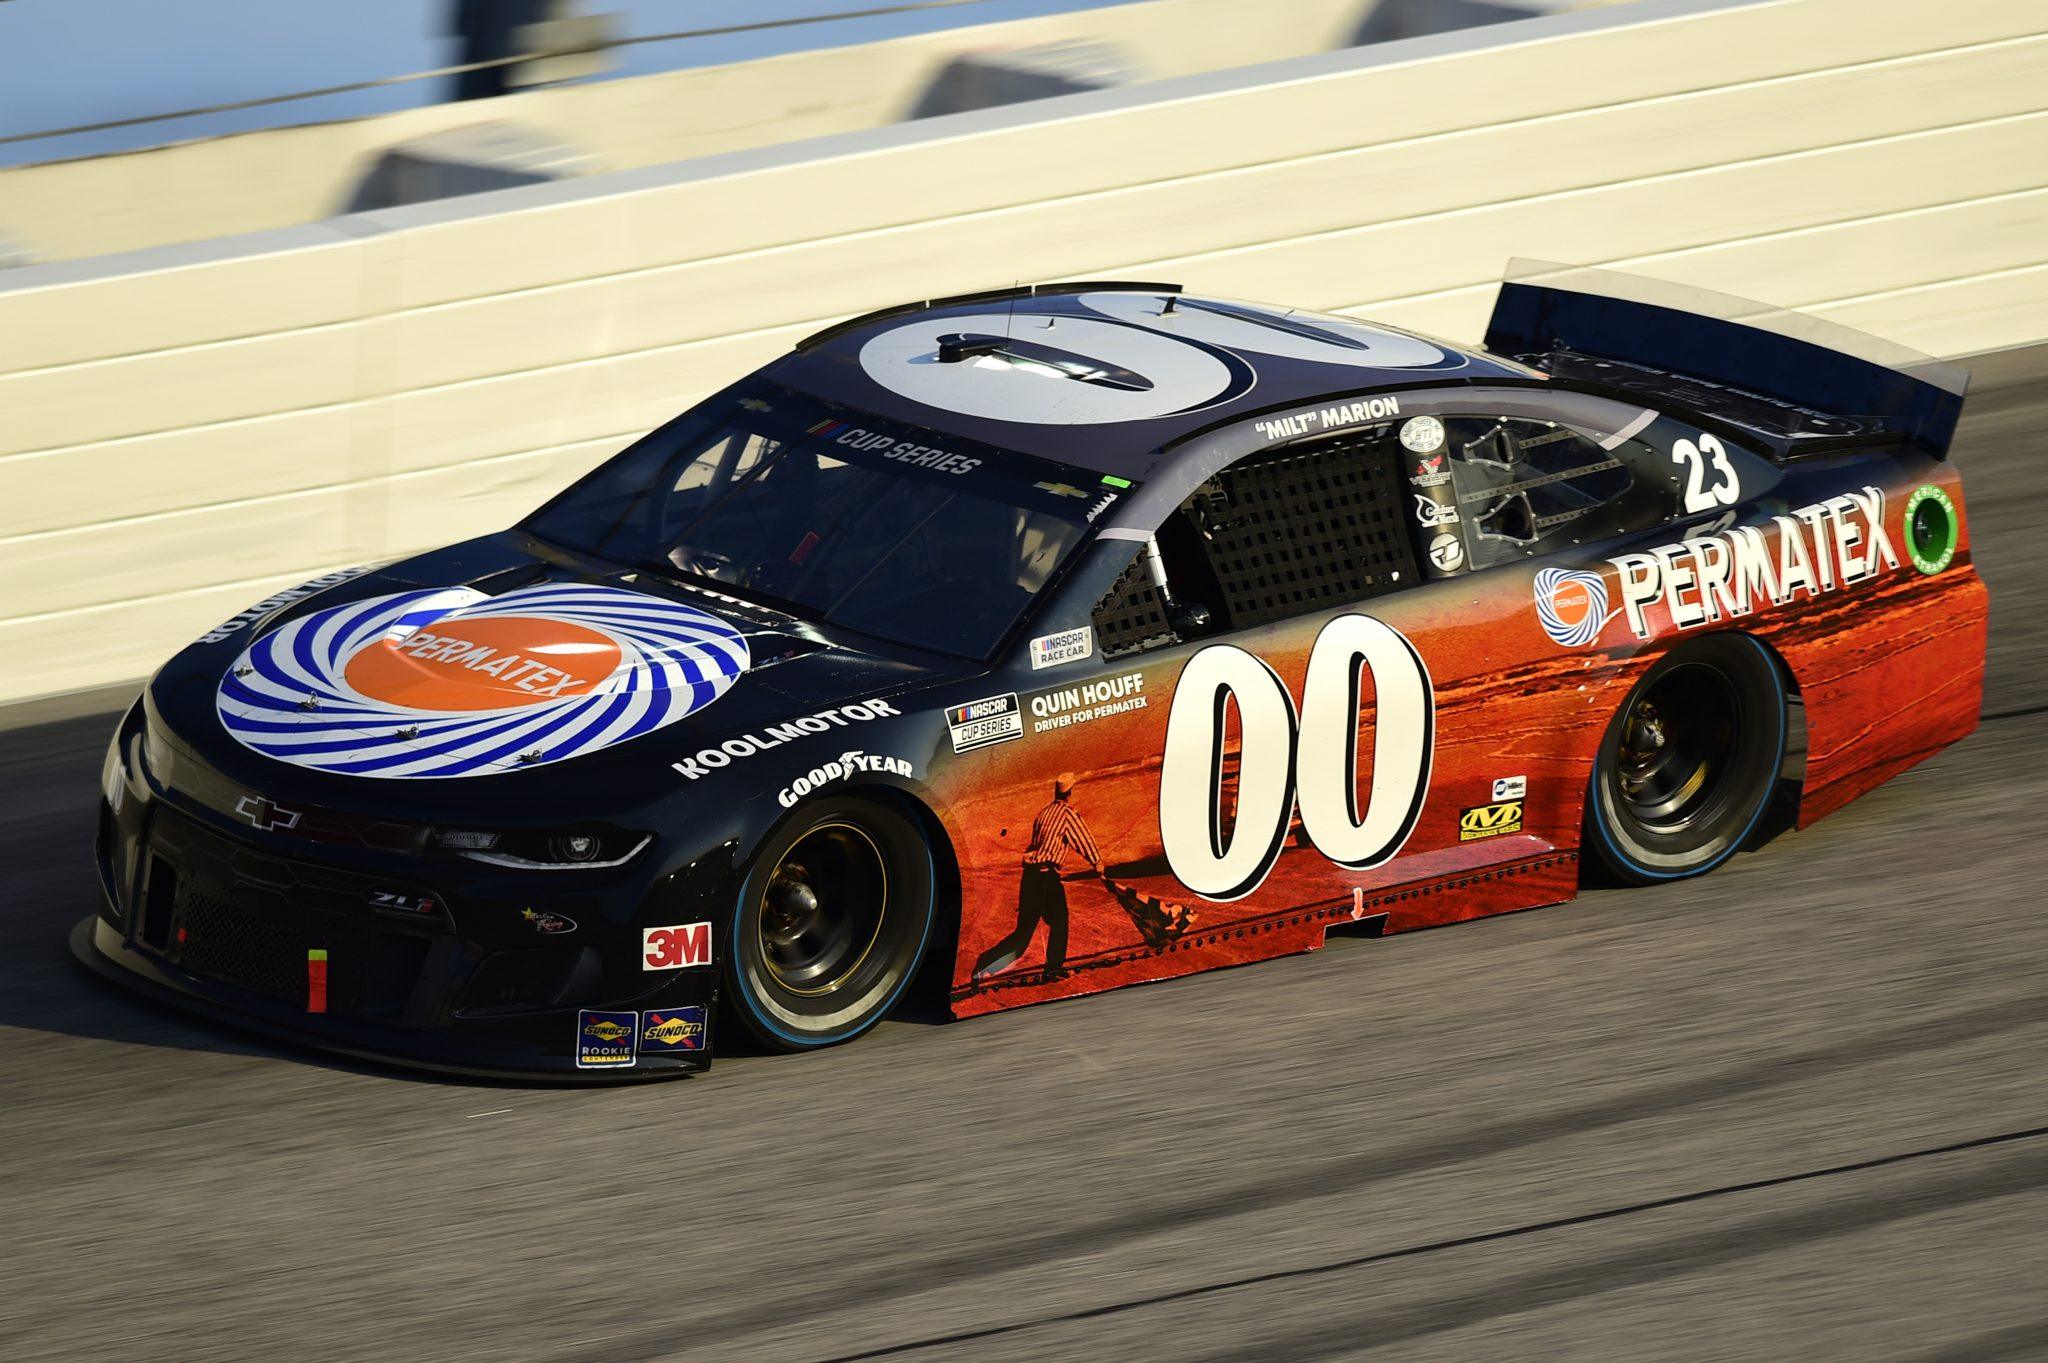 DARLINGTON, SOUTH CAROLINA - SEPTEMBER 06: Quin Houff, driver of the #00 Permatex Chevrolet, drives during the NASCAR Cup Series Cook Out Southern 500 at Darlington Raceway on September 06, 2020 in Darlington, South Carolina. (Photo by Jared C. Tilton/Getty Images) | Getty Images